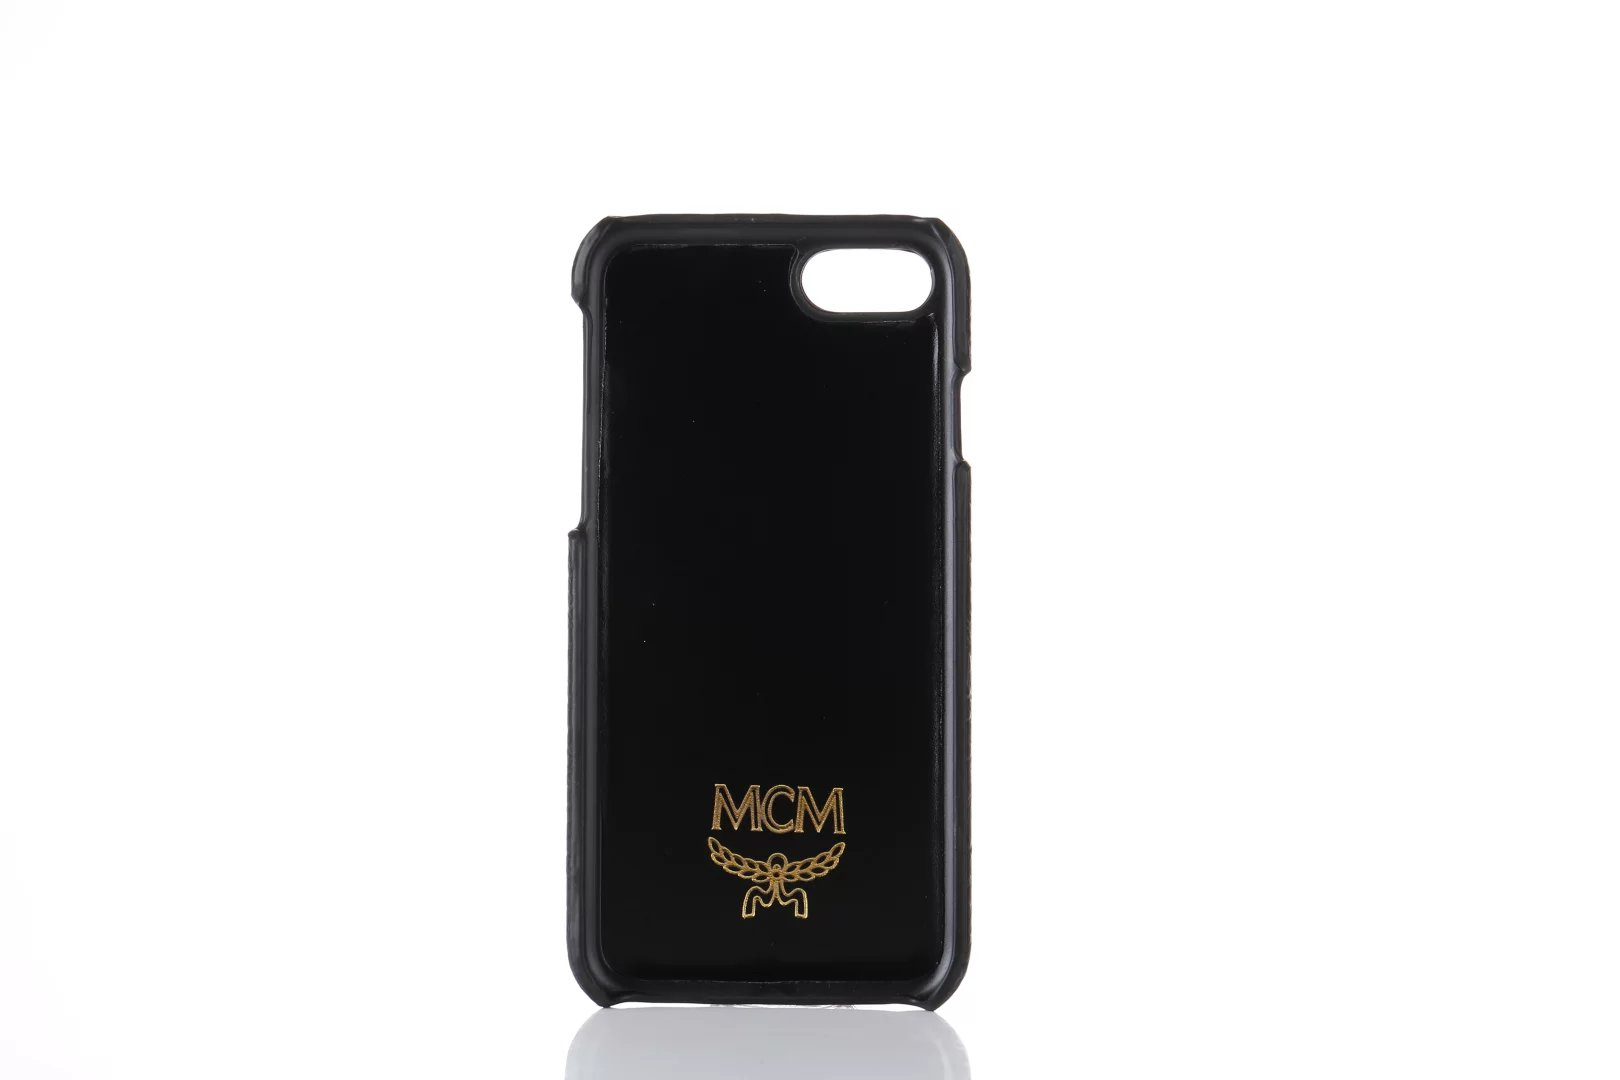 make my own iphone 6 Plus case case cover iphone 6 Plus fashion iphone6 plus case cell phone protectors top iphone 6 cases cooler master elite case pack plus where can i buy iphone 6 cases cell phone cases iphone 6